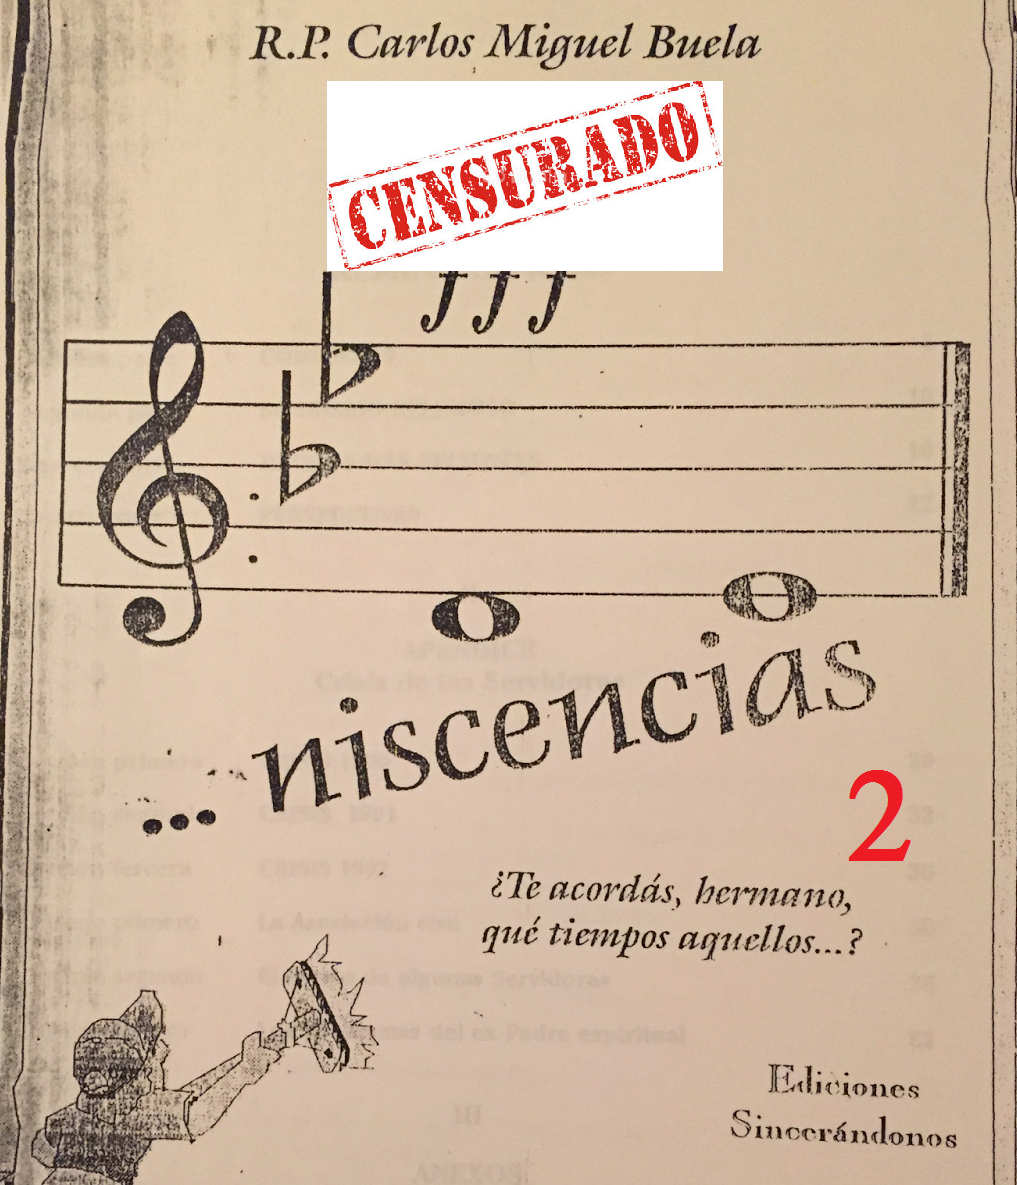 Reminiscencias 2